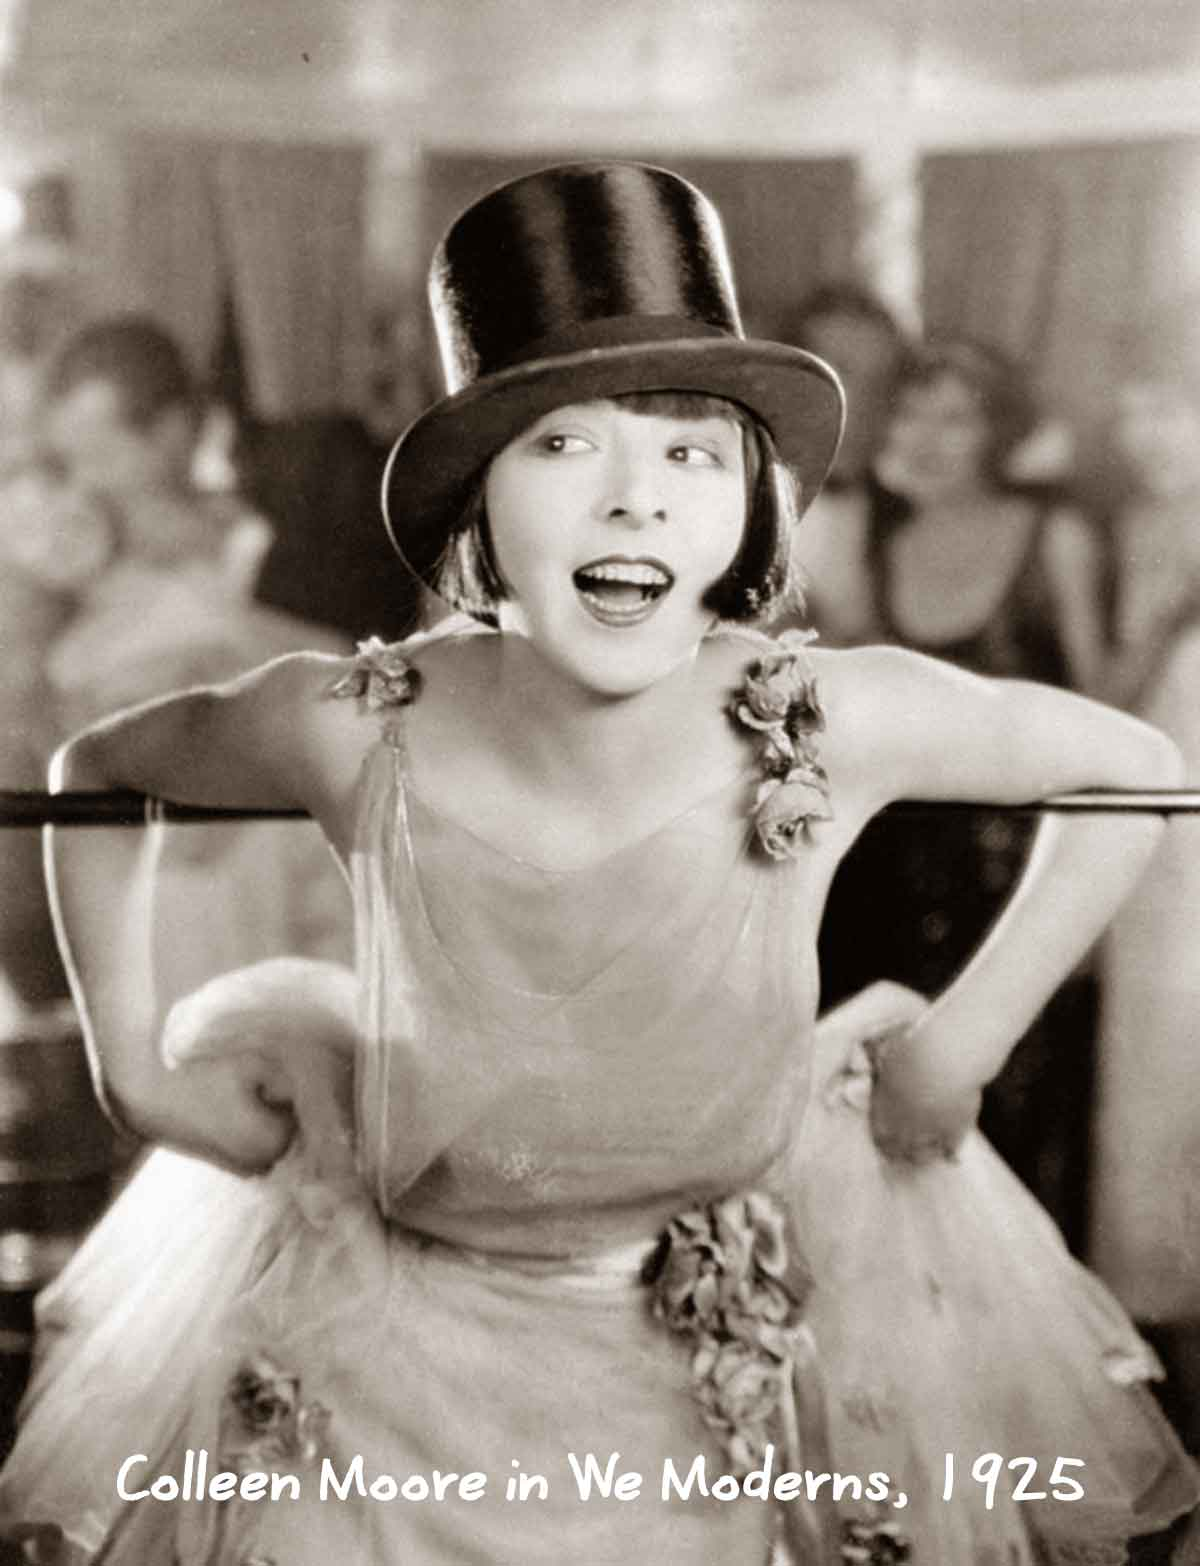 Colleen-Moore-in-We-Moderns,-1925